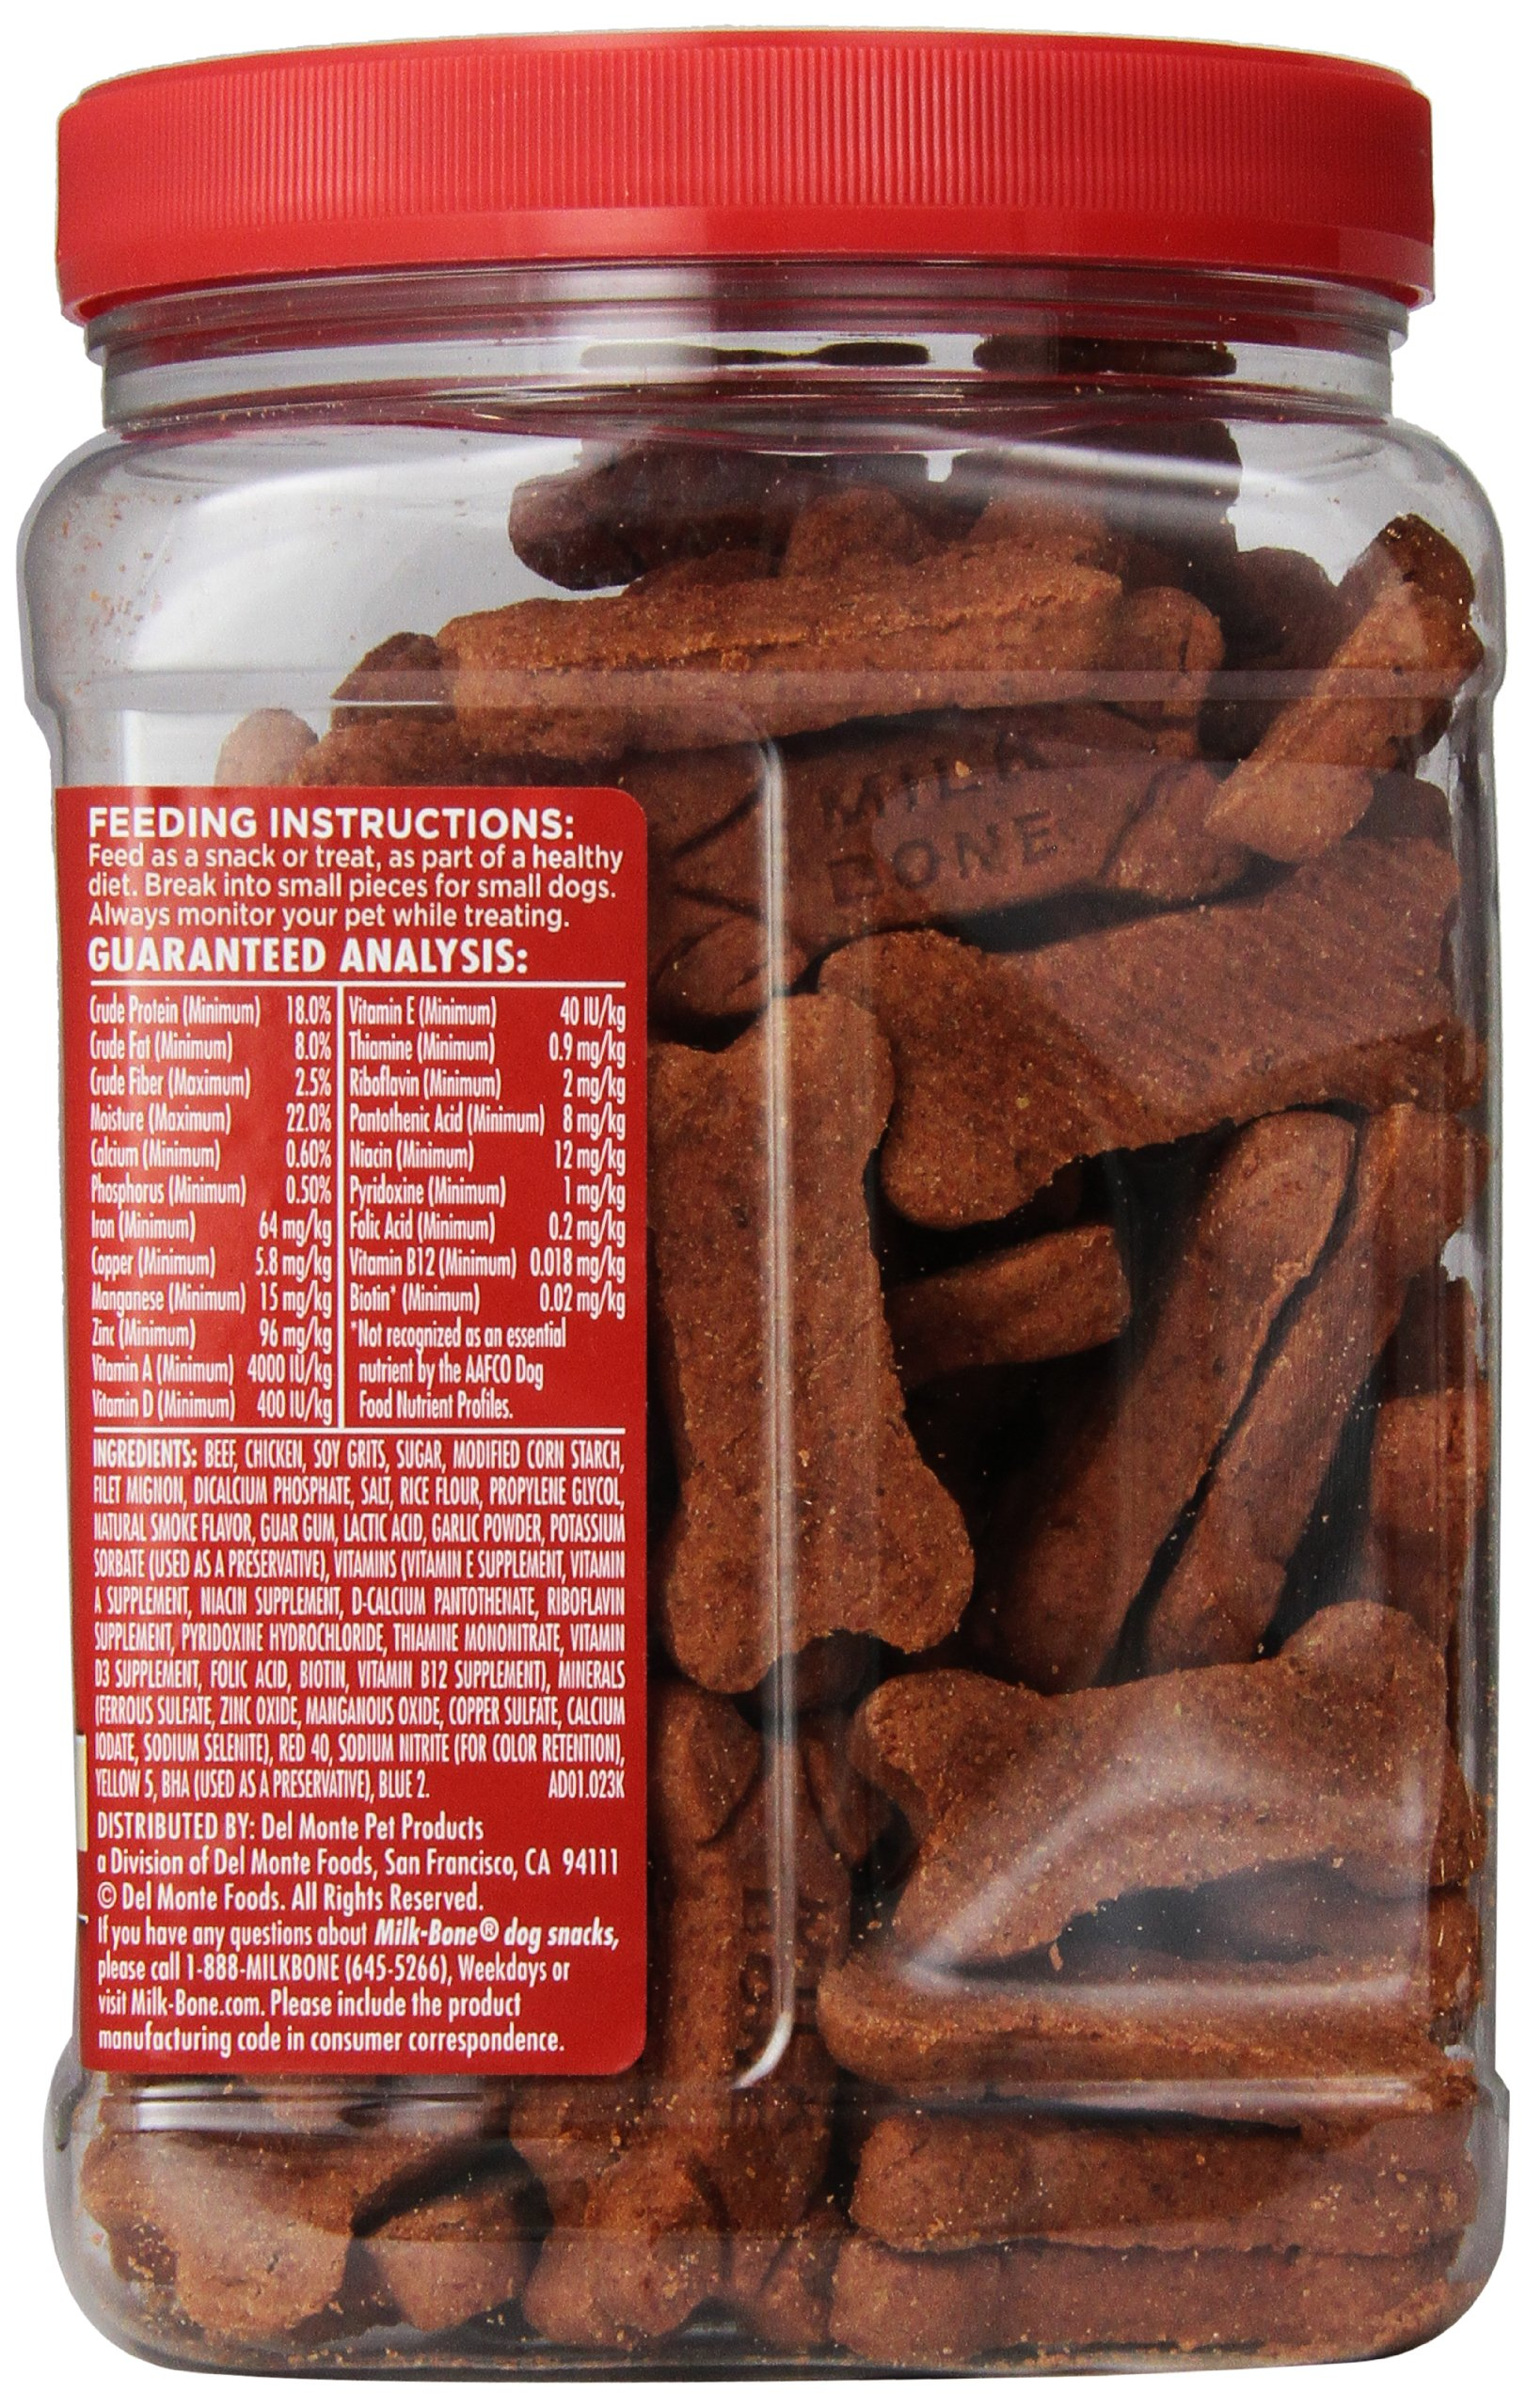 MILKBONE DOG BISCUITS 799058 6-Pack Chewy Treats Filet Mignon For Pets, 25-Ounce by MILKBONE DOG BISCUITS (Image #5)